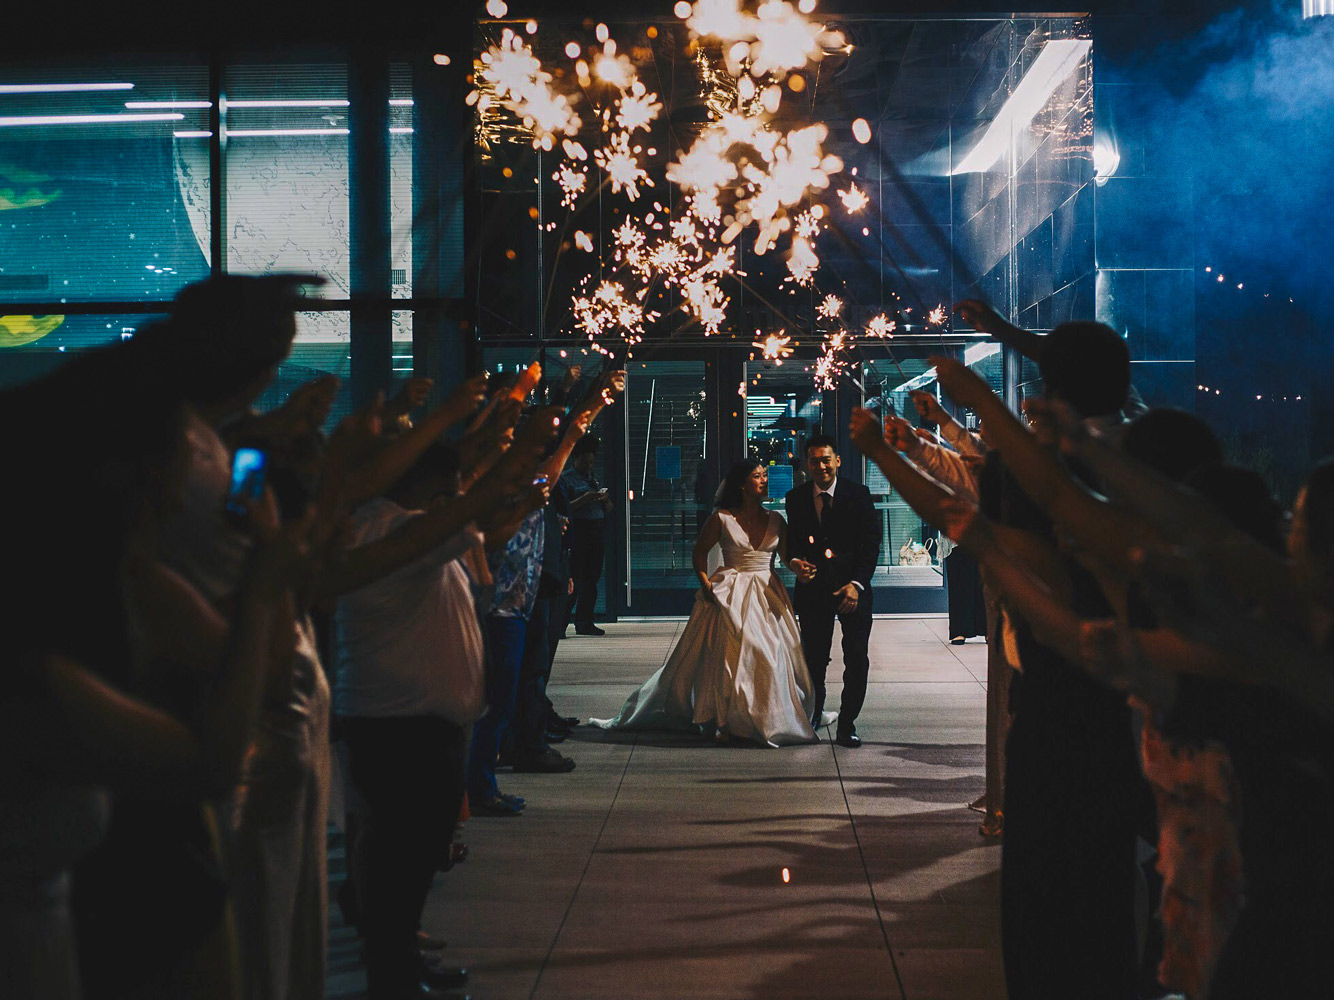 A newly married couple prepares to go through a tunnel of sparklers held up by wedding guests